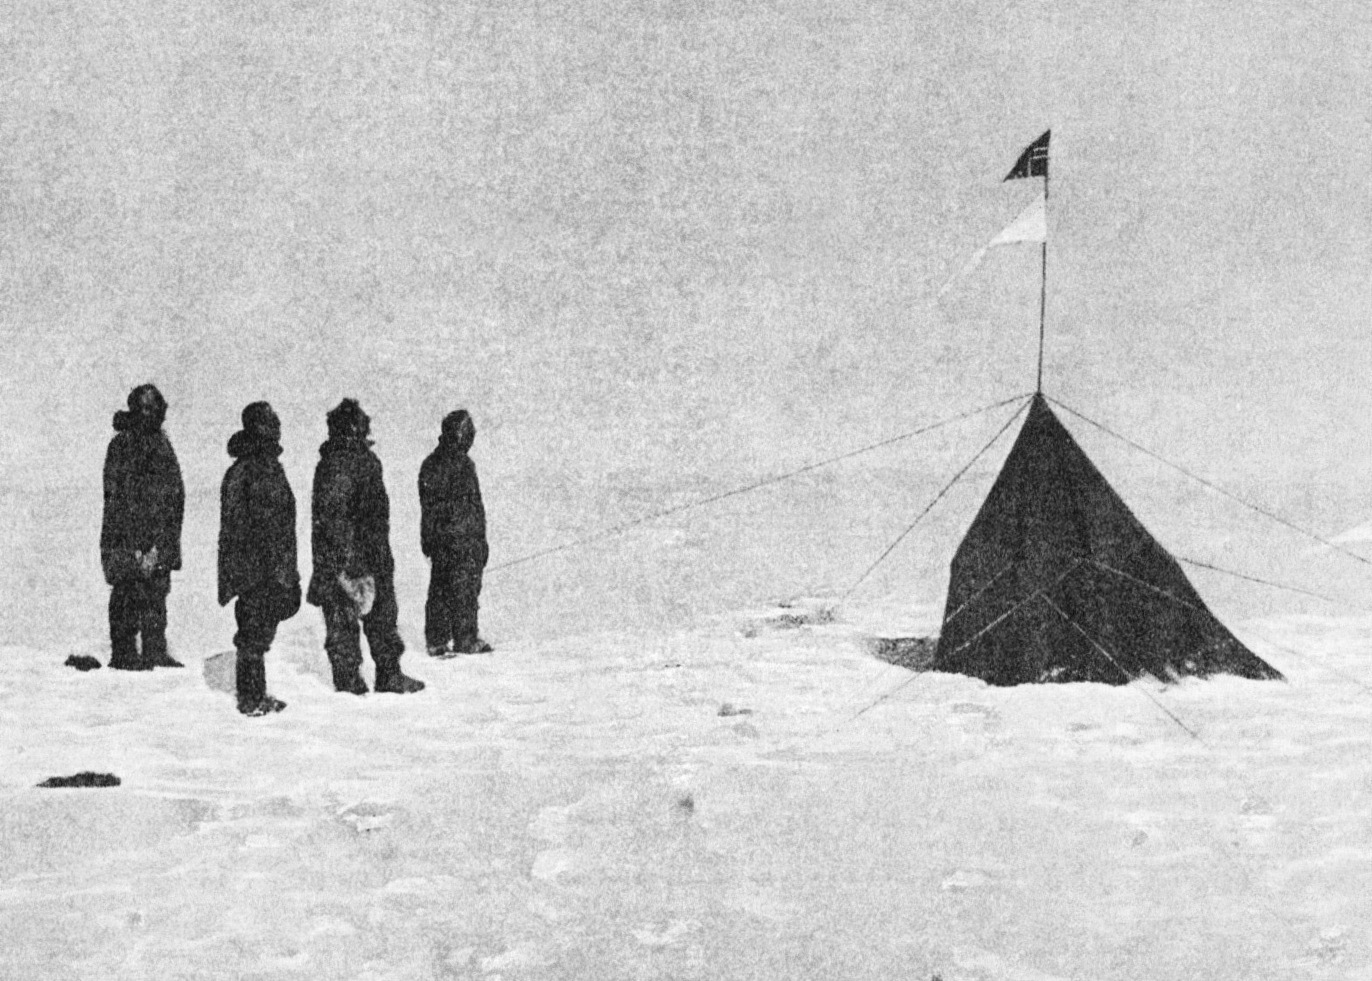 "Figure 1 - Roald Amundsen, Helmer Hanssen, Sverre Hassel and Oscar Wisting (l–r) at the South Pole standing before ""Polheim"", the tent erected at the South Pole on 16 December 1911. Photograph by Olav Bjaaland, the fifth team member.  Originally published in Amundsen's ""The South Pole.""  From the Wikicommons and in the public domain."